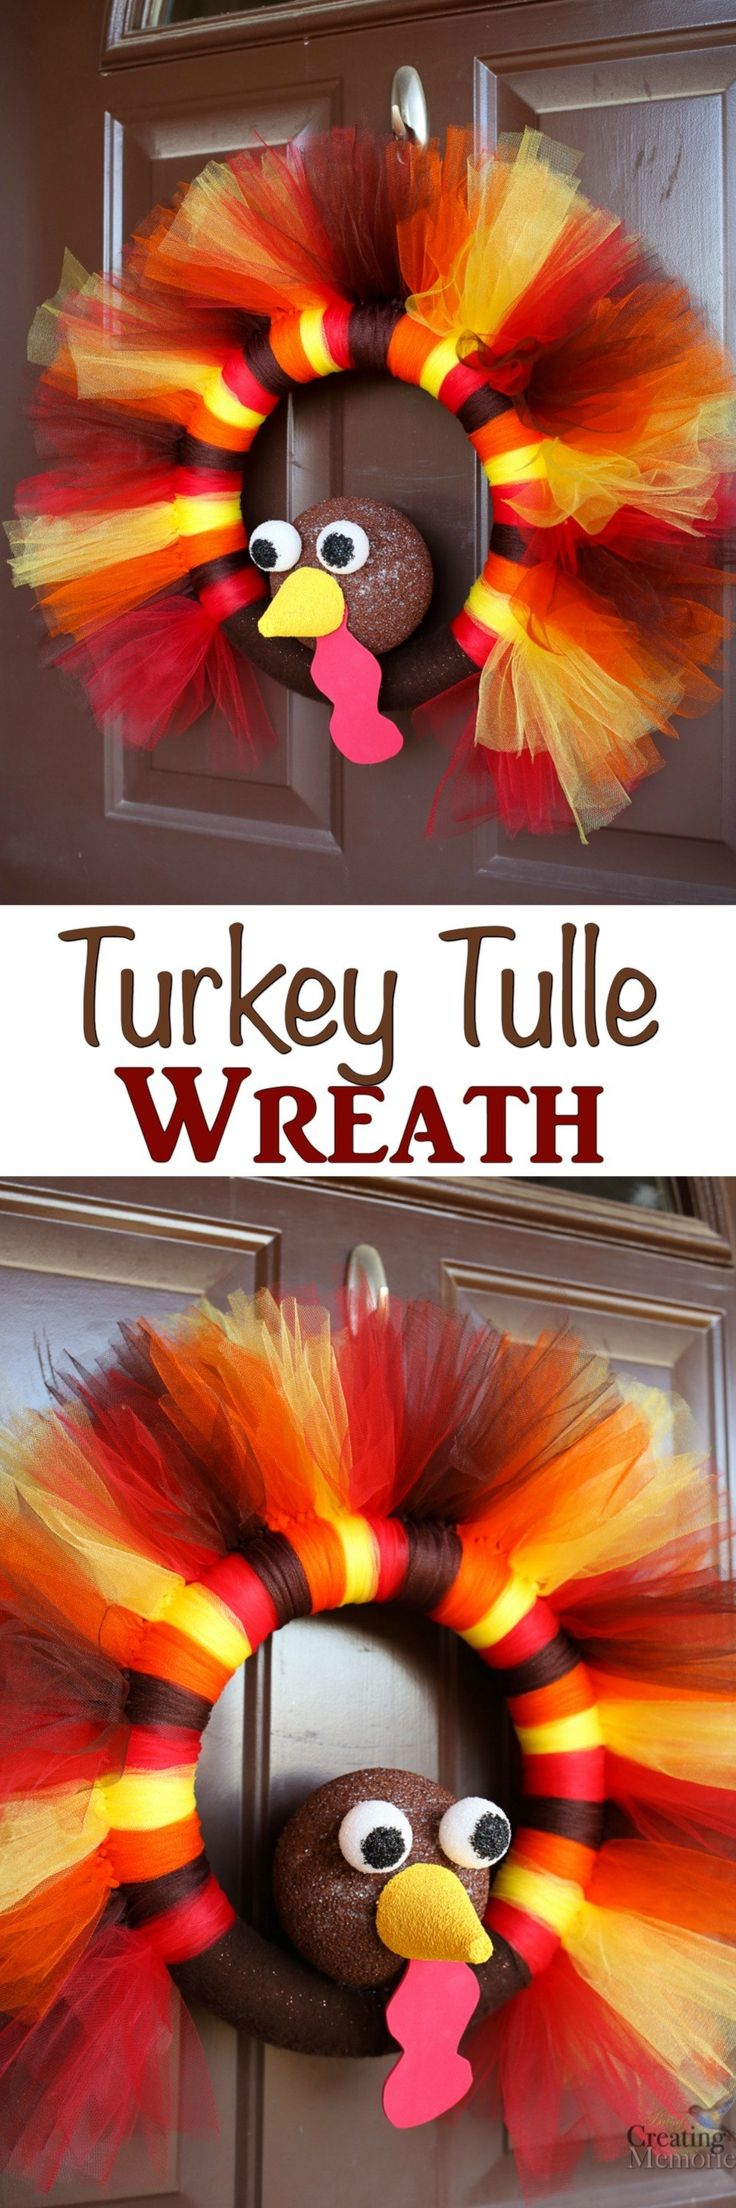 Don't Skip Thanksgiving! Decorate your door with this easy Thanksgiving Turkey Tulle Wreath! The best Thanksgiving Wreath for your Door decor! via @2creatememories